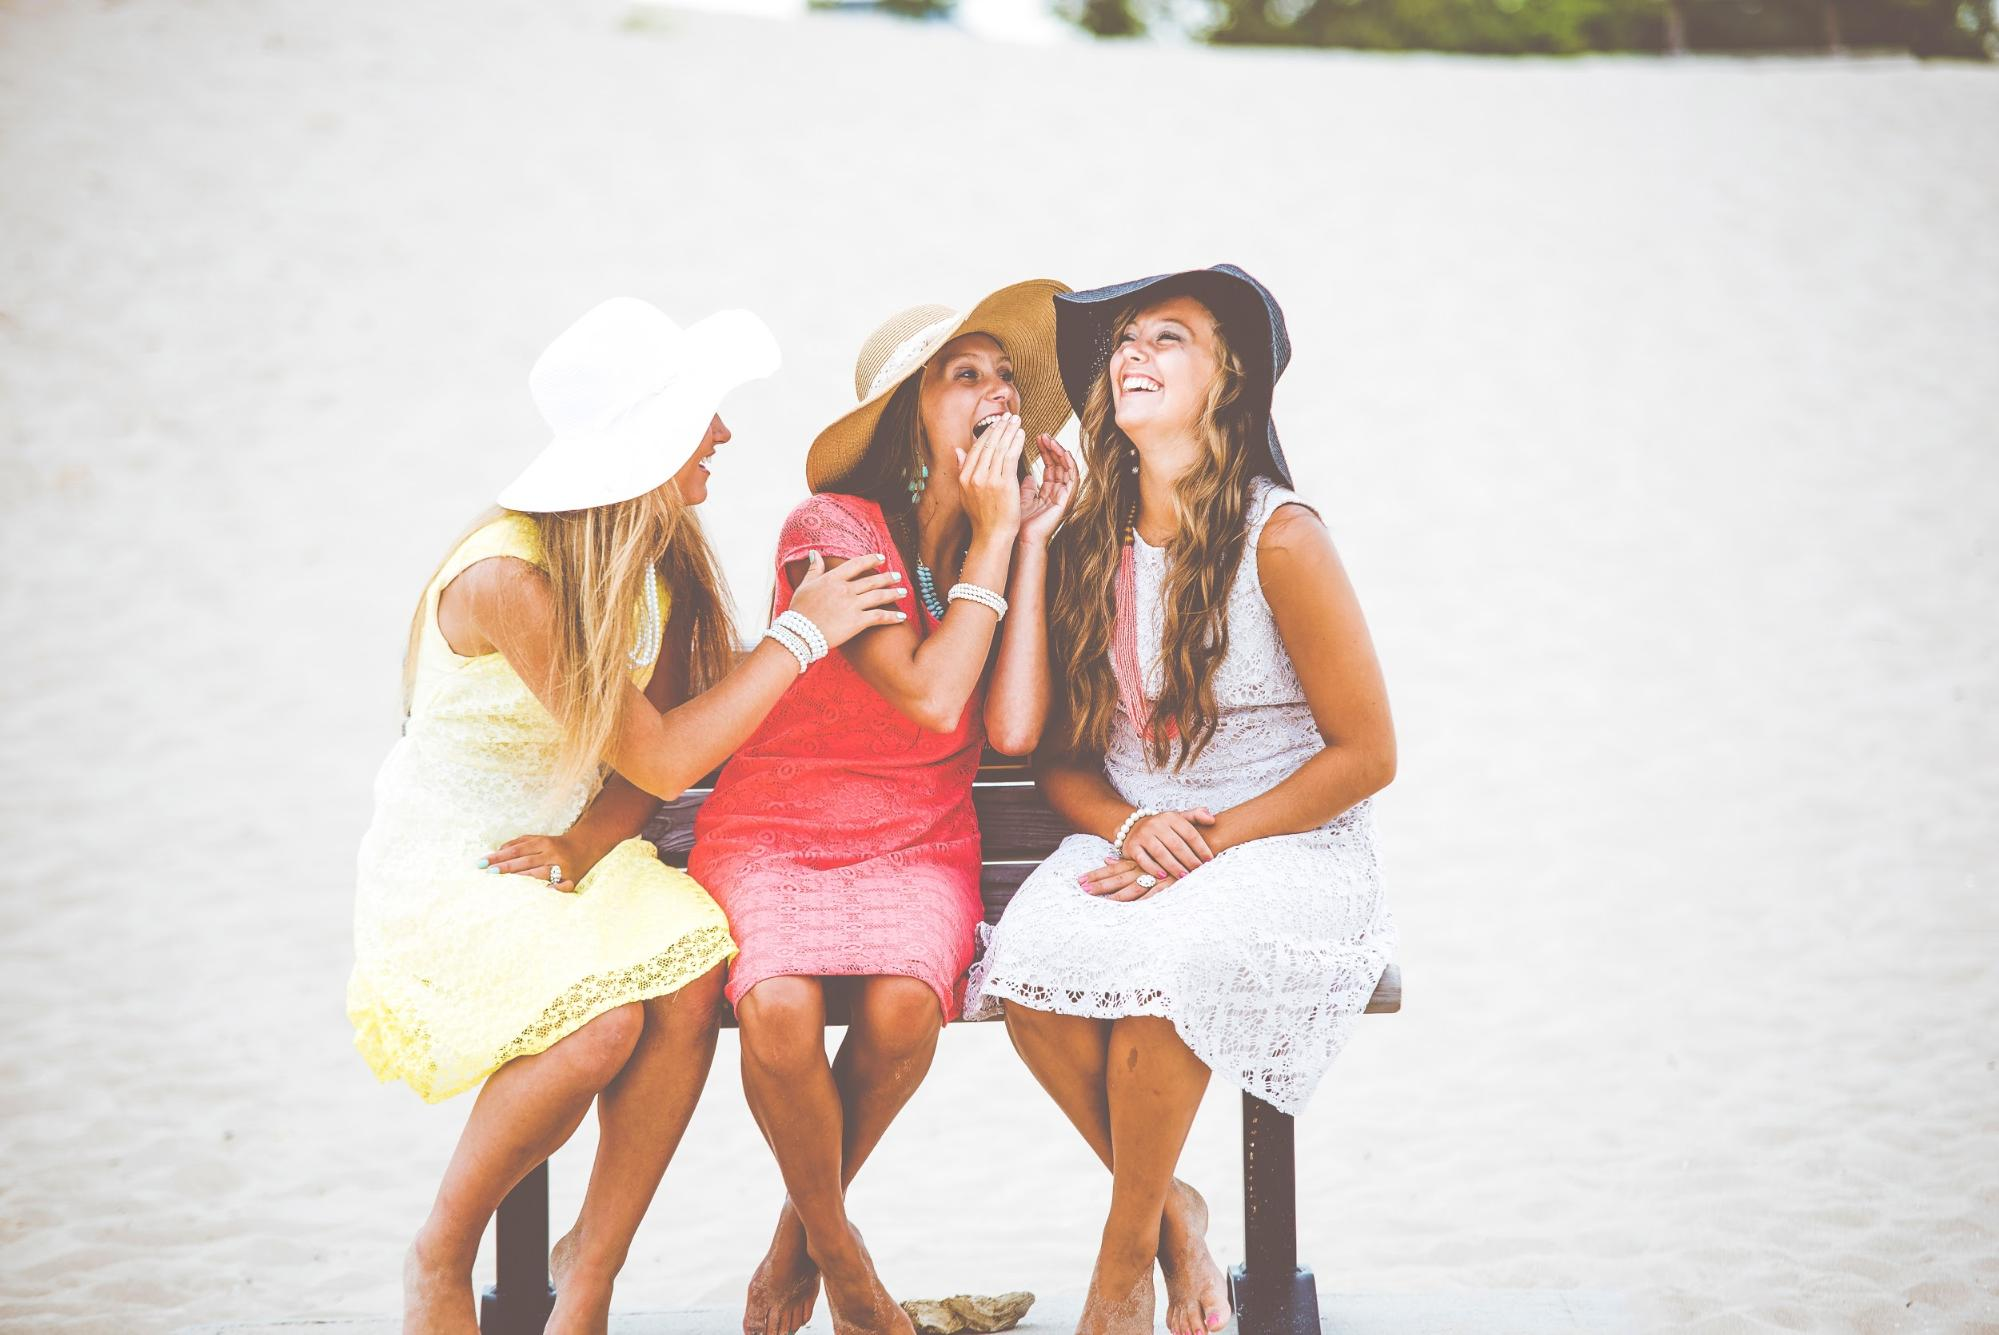 Three women having fun and laughing by the beach